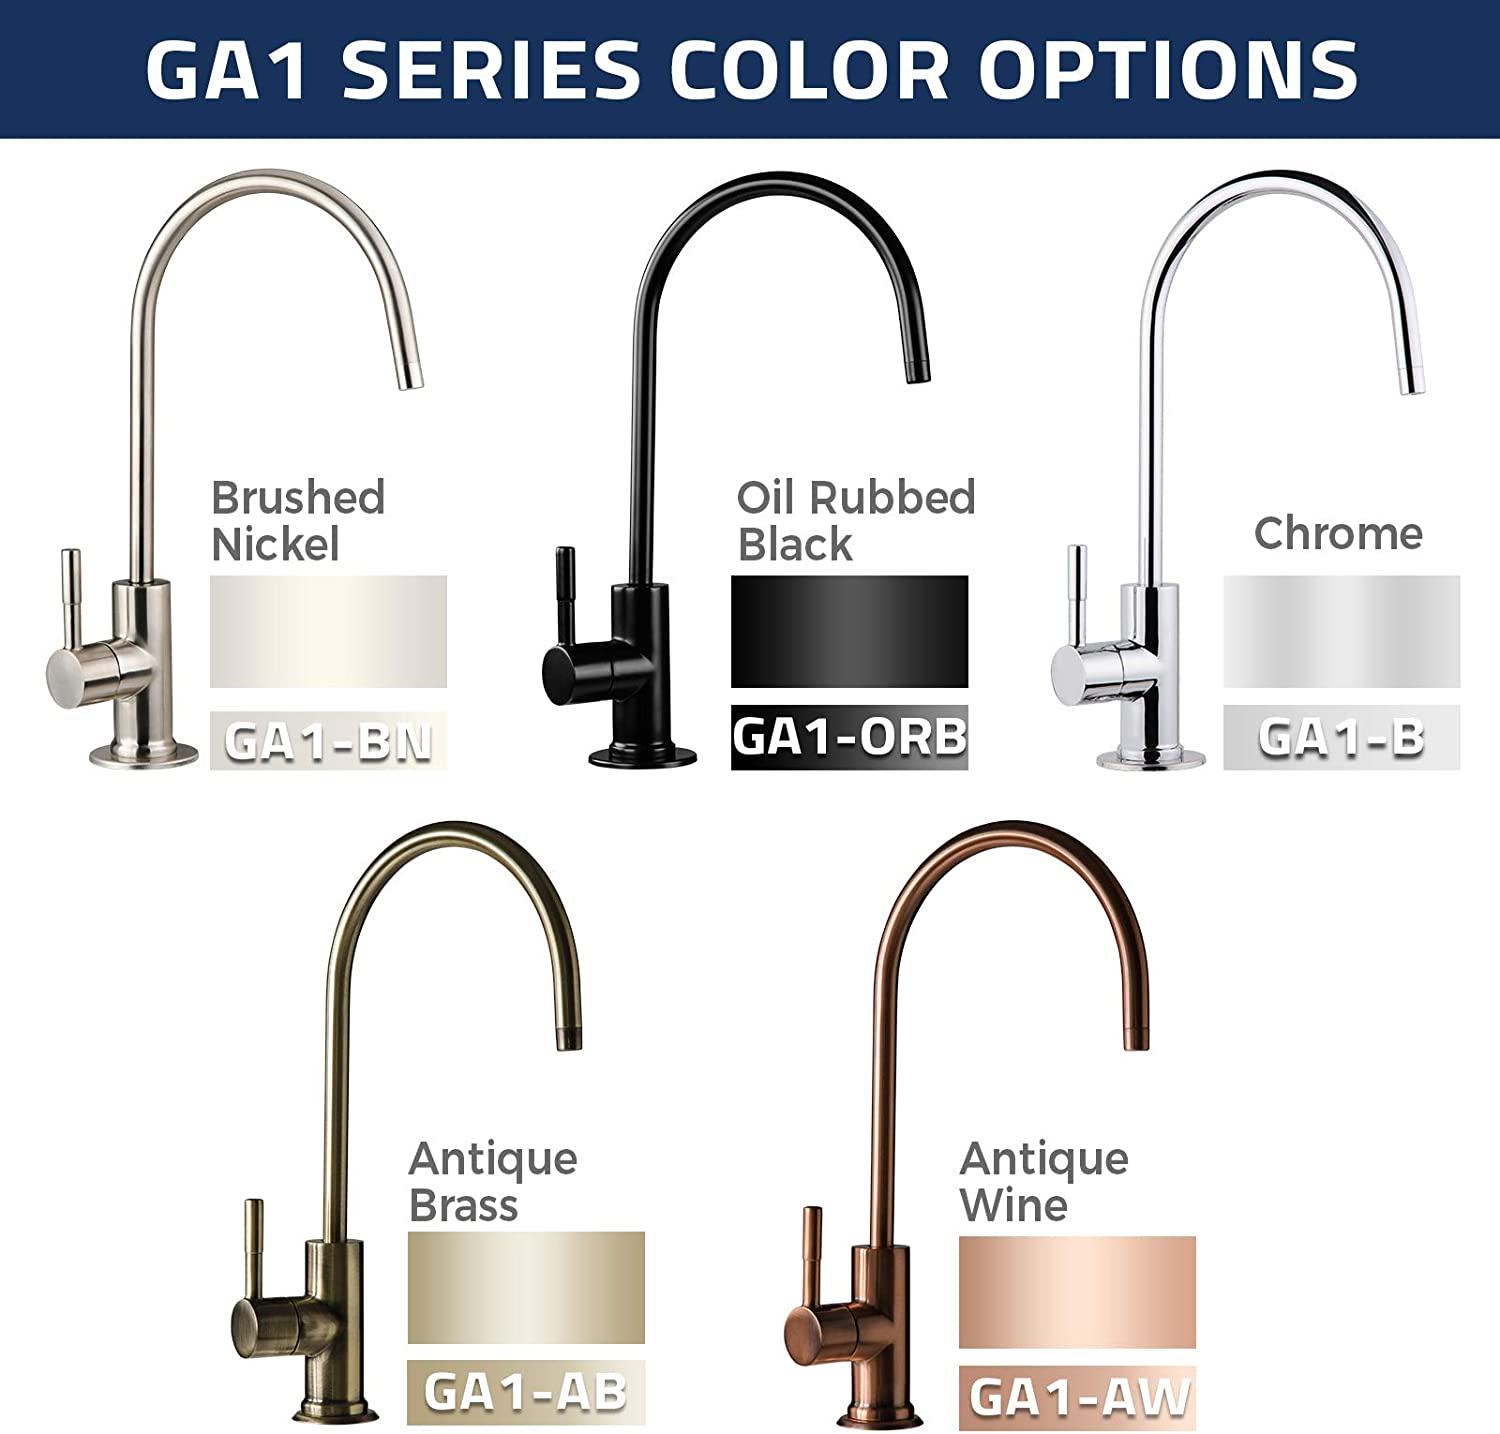 iSpring GA1-BN RO Faucet 5 color and finish options